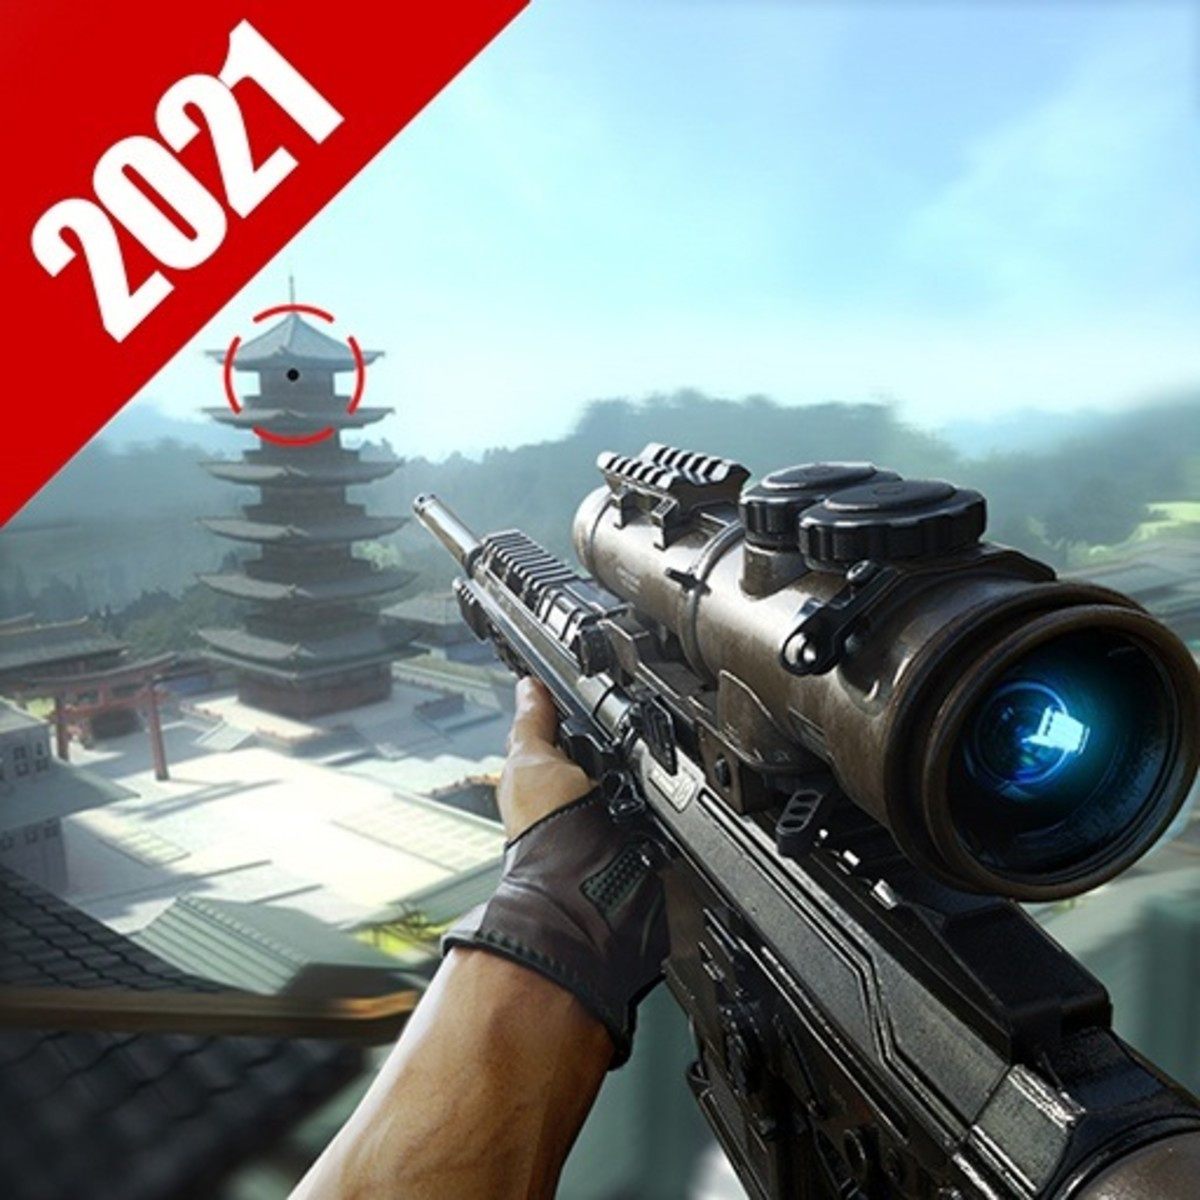 snipper-honor-an-exciting-video-game